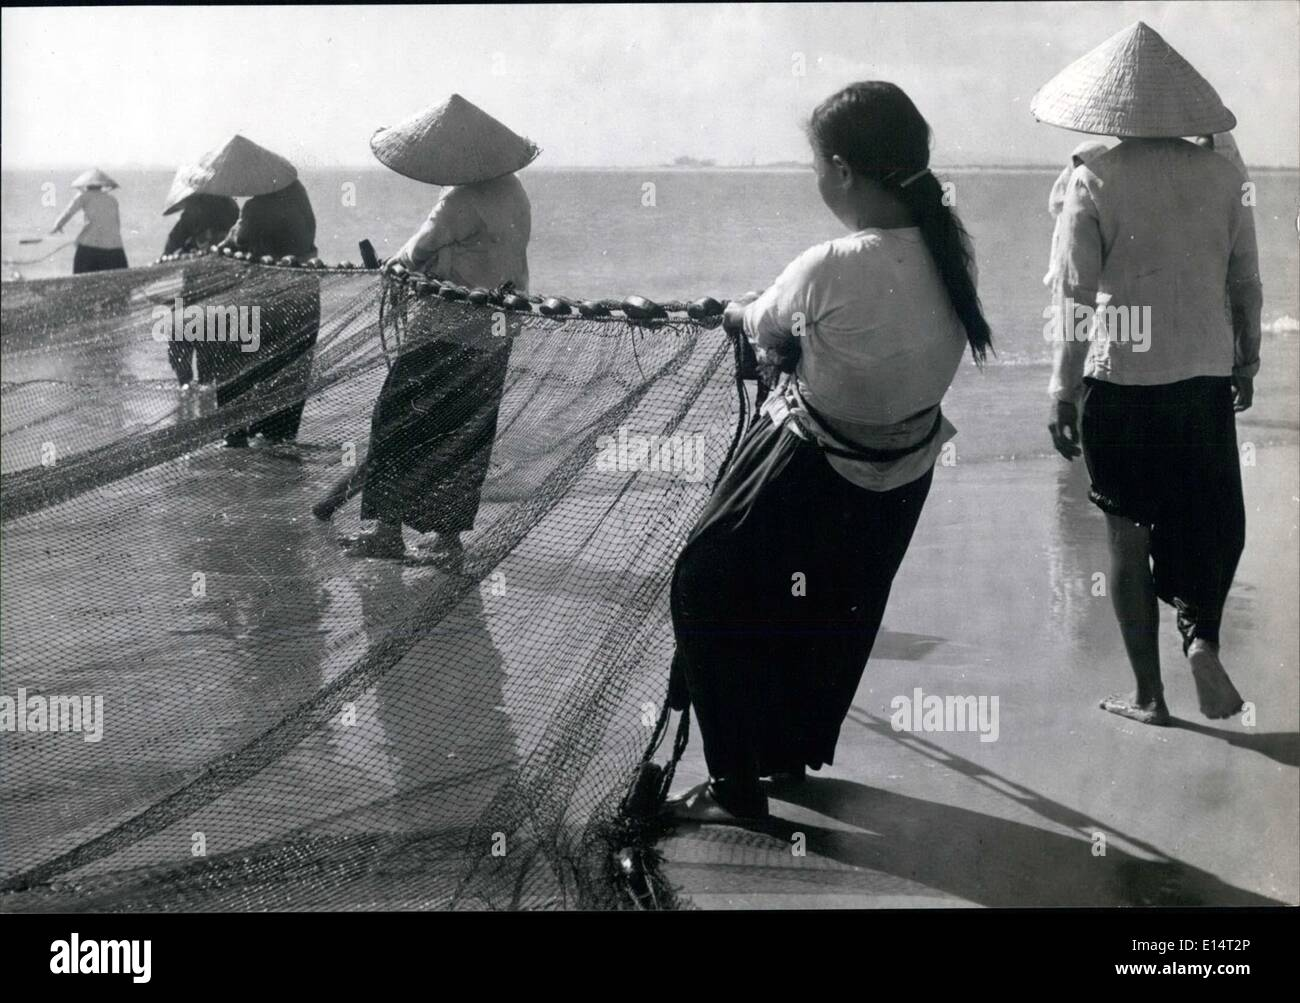 Apr. 18, 2012 - Vietnamese girl of Cap St. Jacques with a rope tied round her waist, helps pull in the heavy fishing nets. She gets a percentage of the fish caught as pay and sell them where she can find customers. - Stock Image